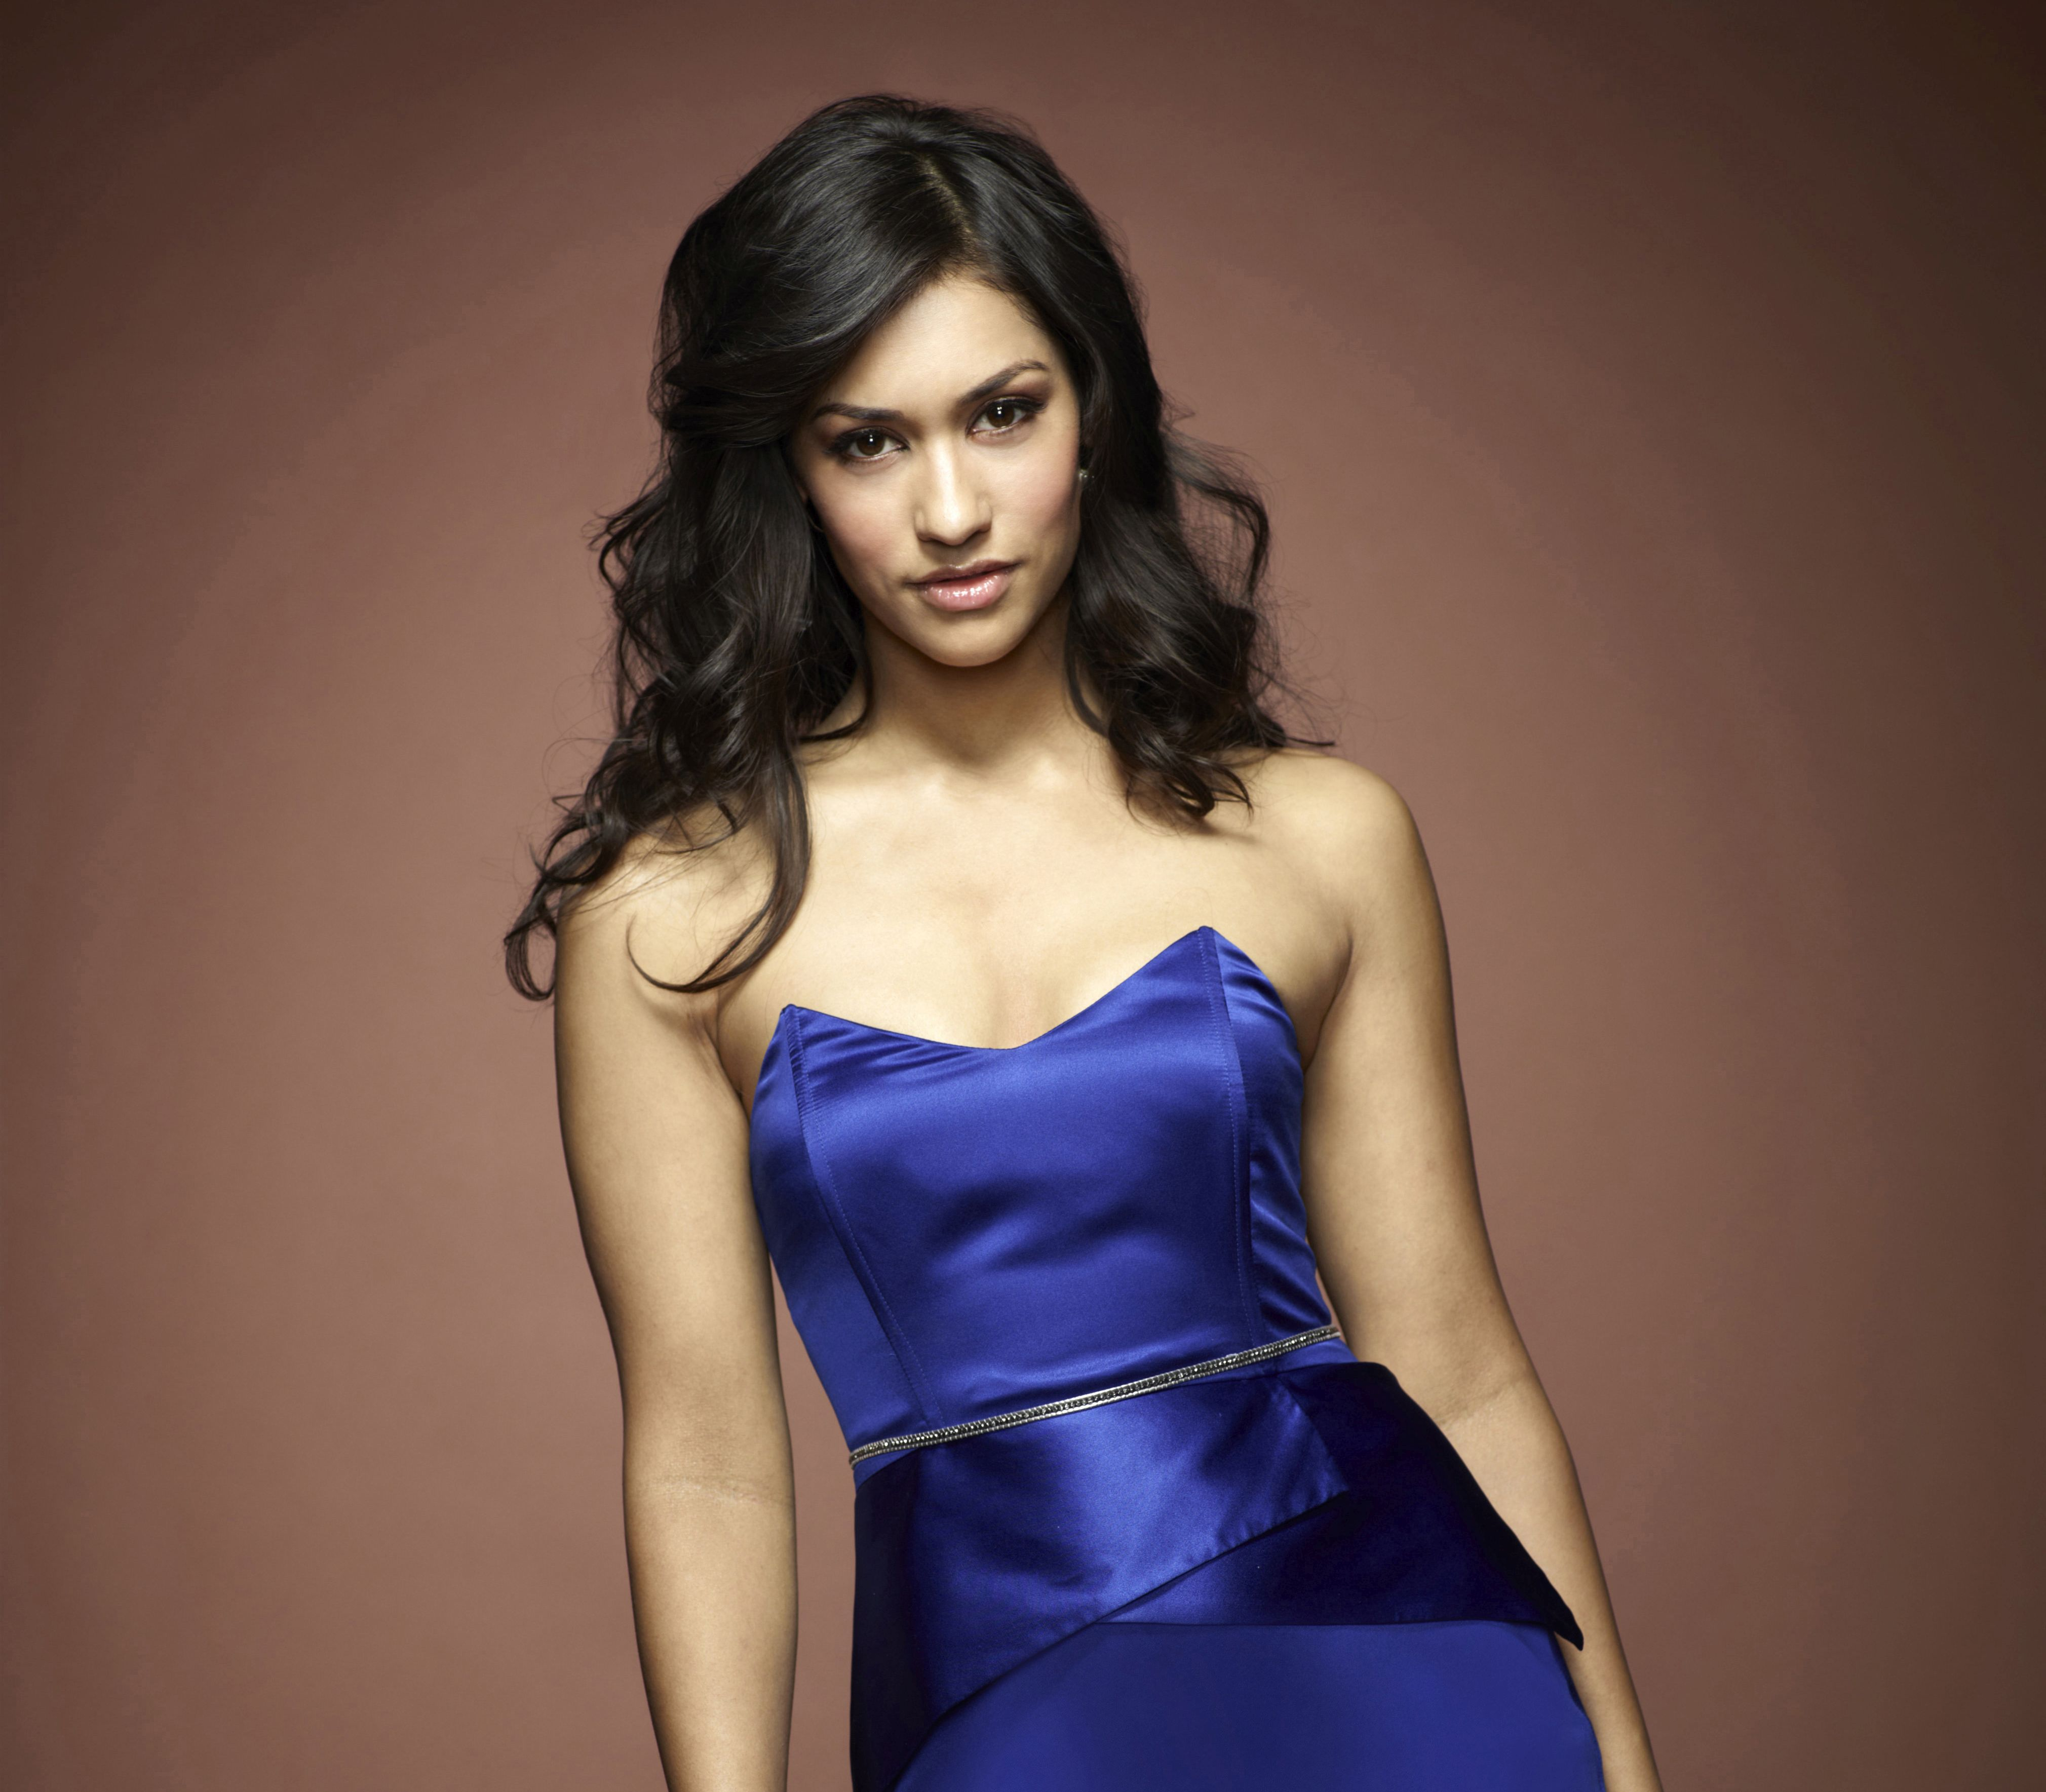 janina gavankar - photo #39